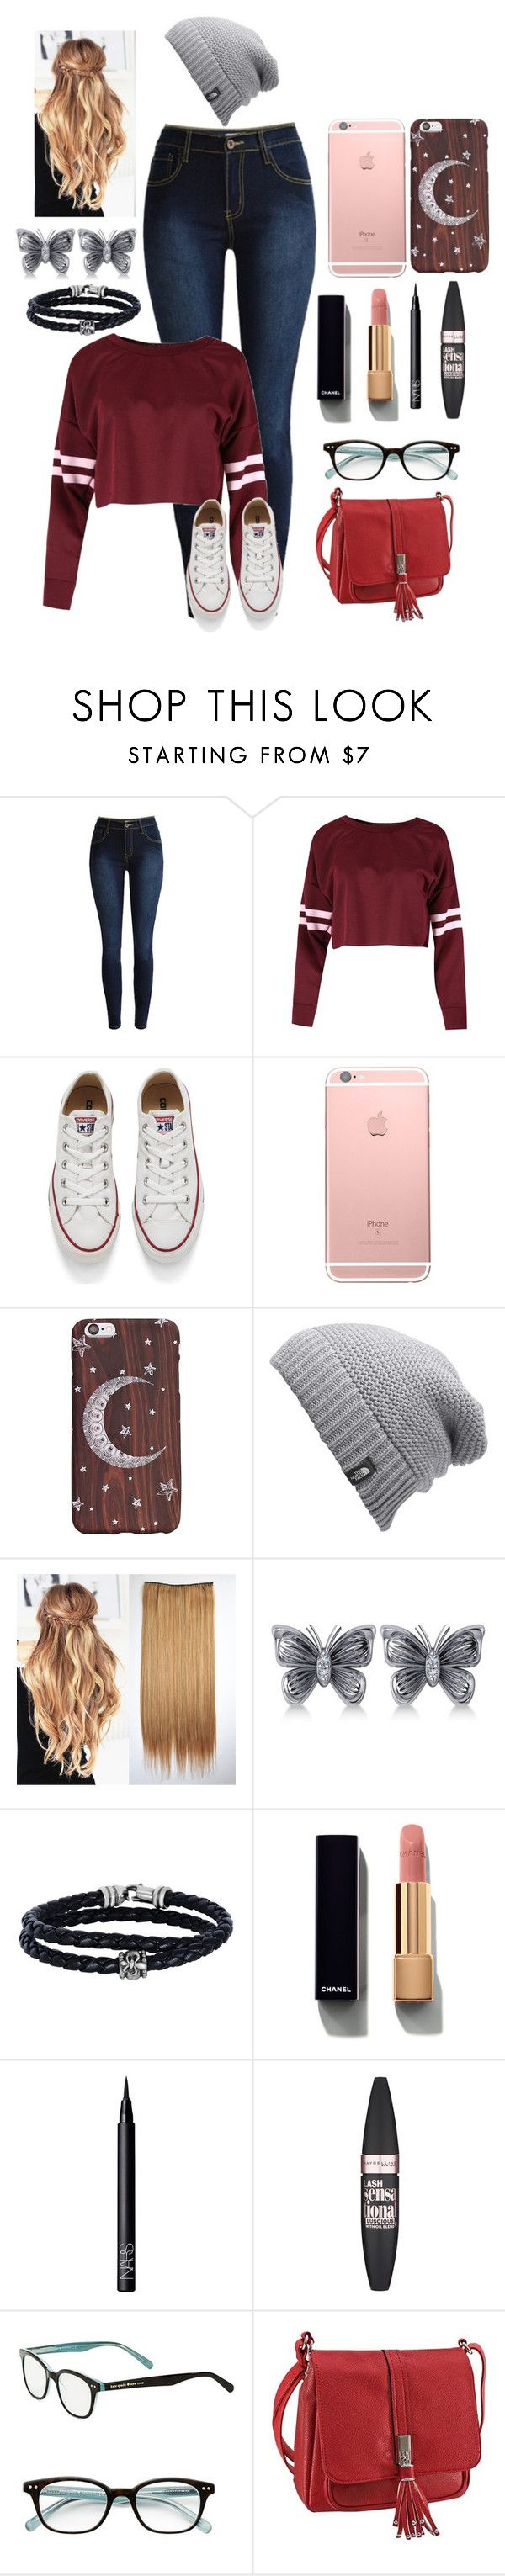 Invert color jpg online -  Inverted Colors Challenge Rtd By Jazz Dazzle Liked On Polyvore Featuring Converse